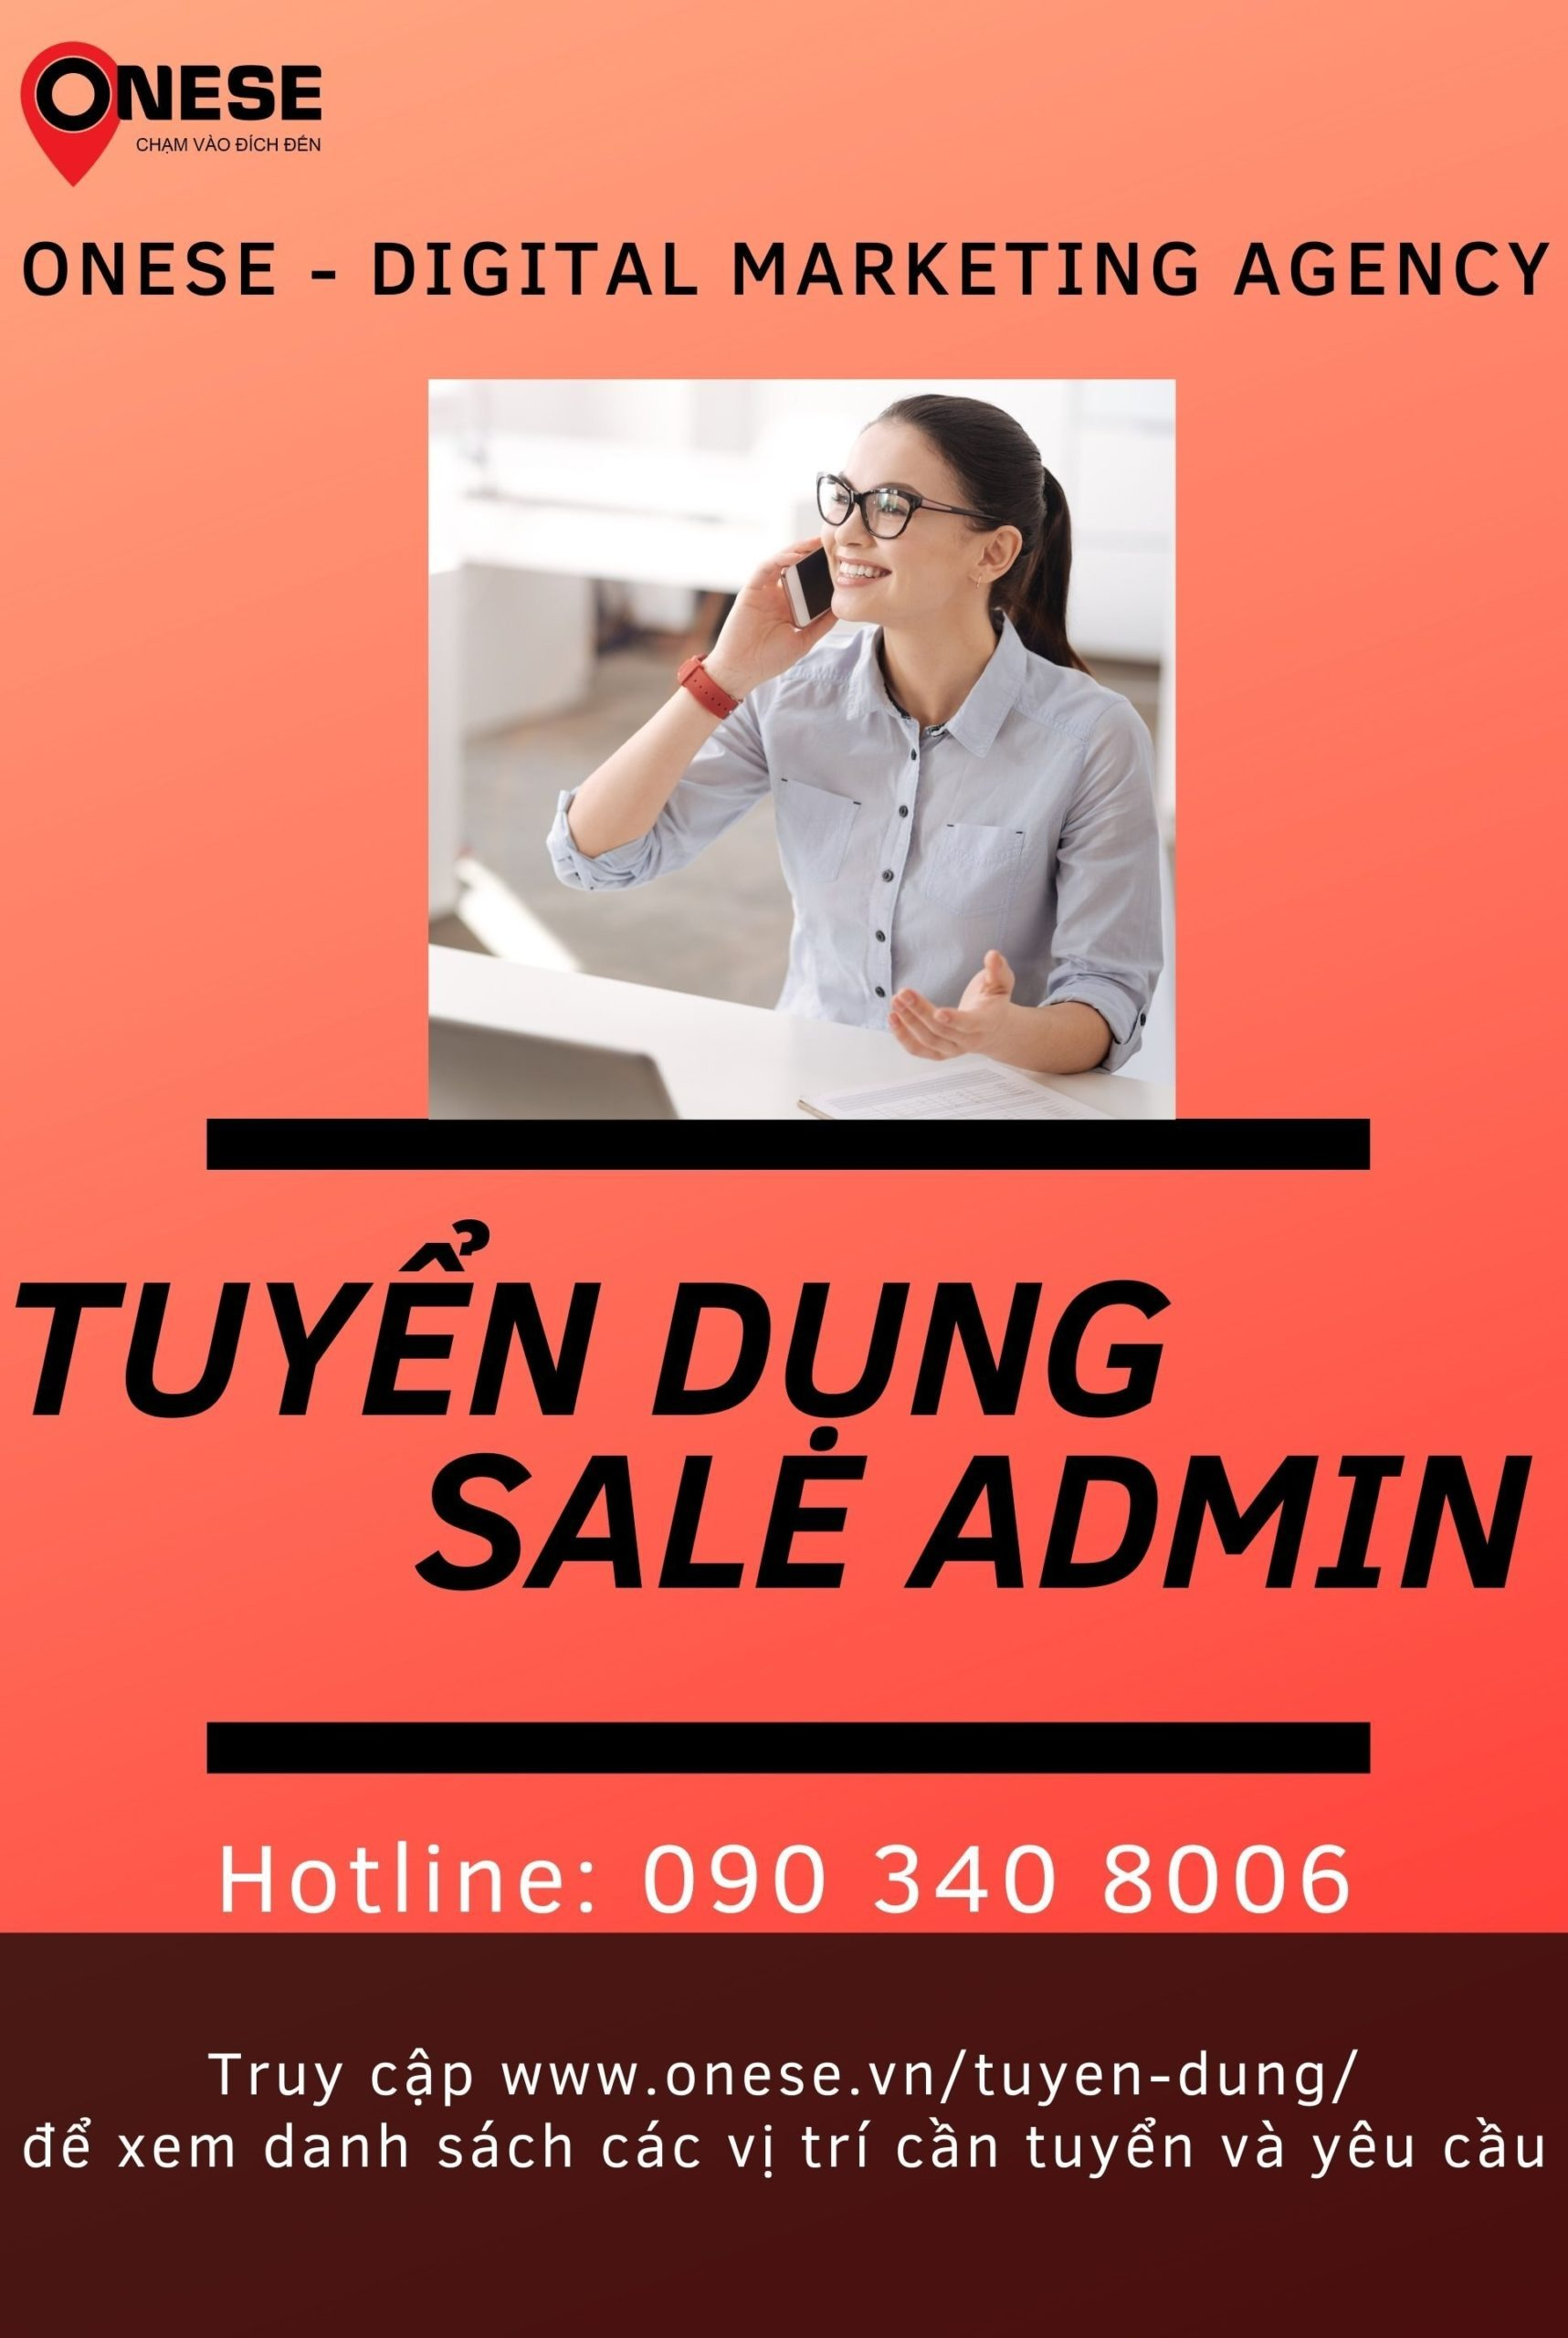 tuyen-dung-sale-admin-scaled